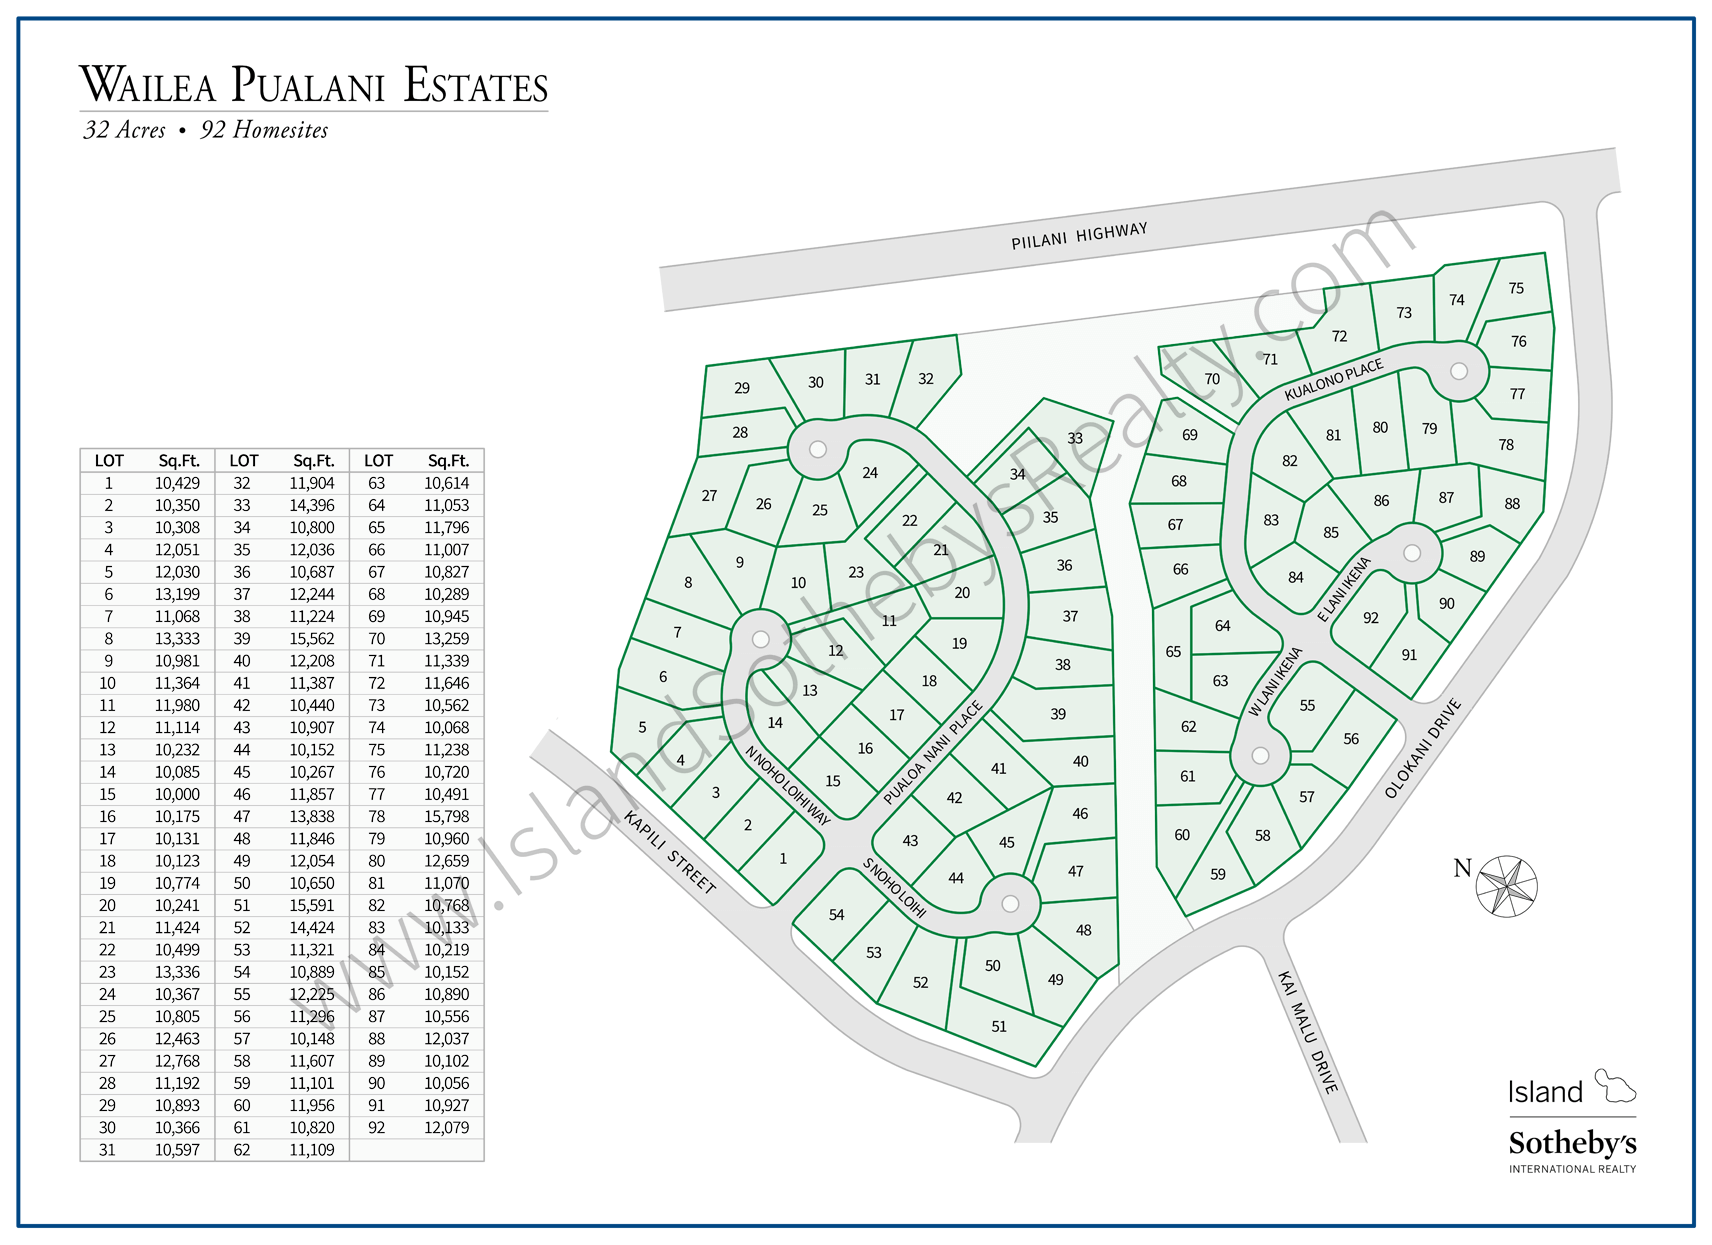 Map of Wailea Pualani Estates Maui